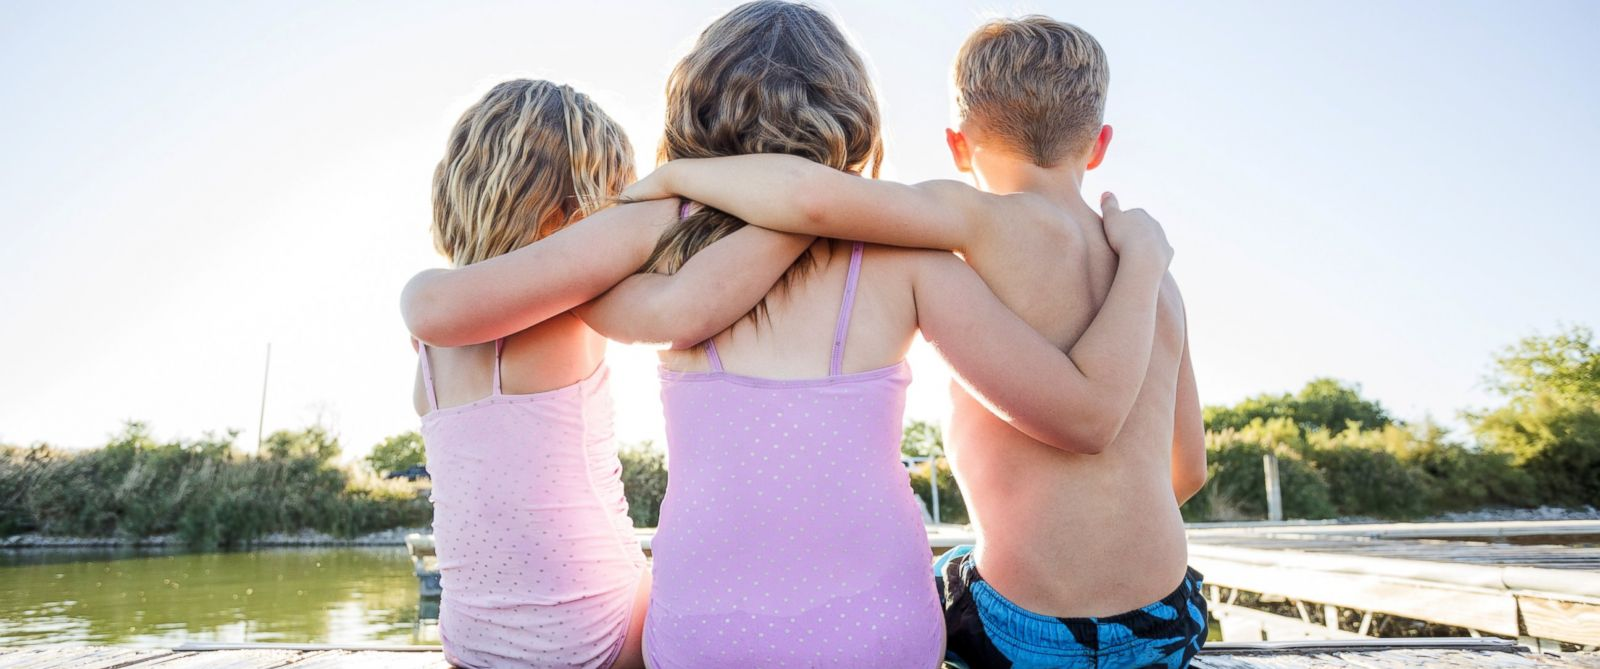 PHOTO: Researchers claim to have found a link between siblings and a healthier BMI